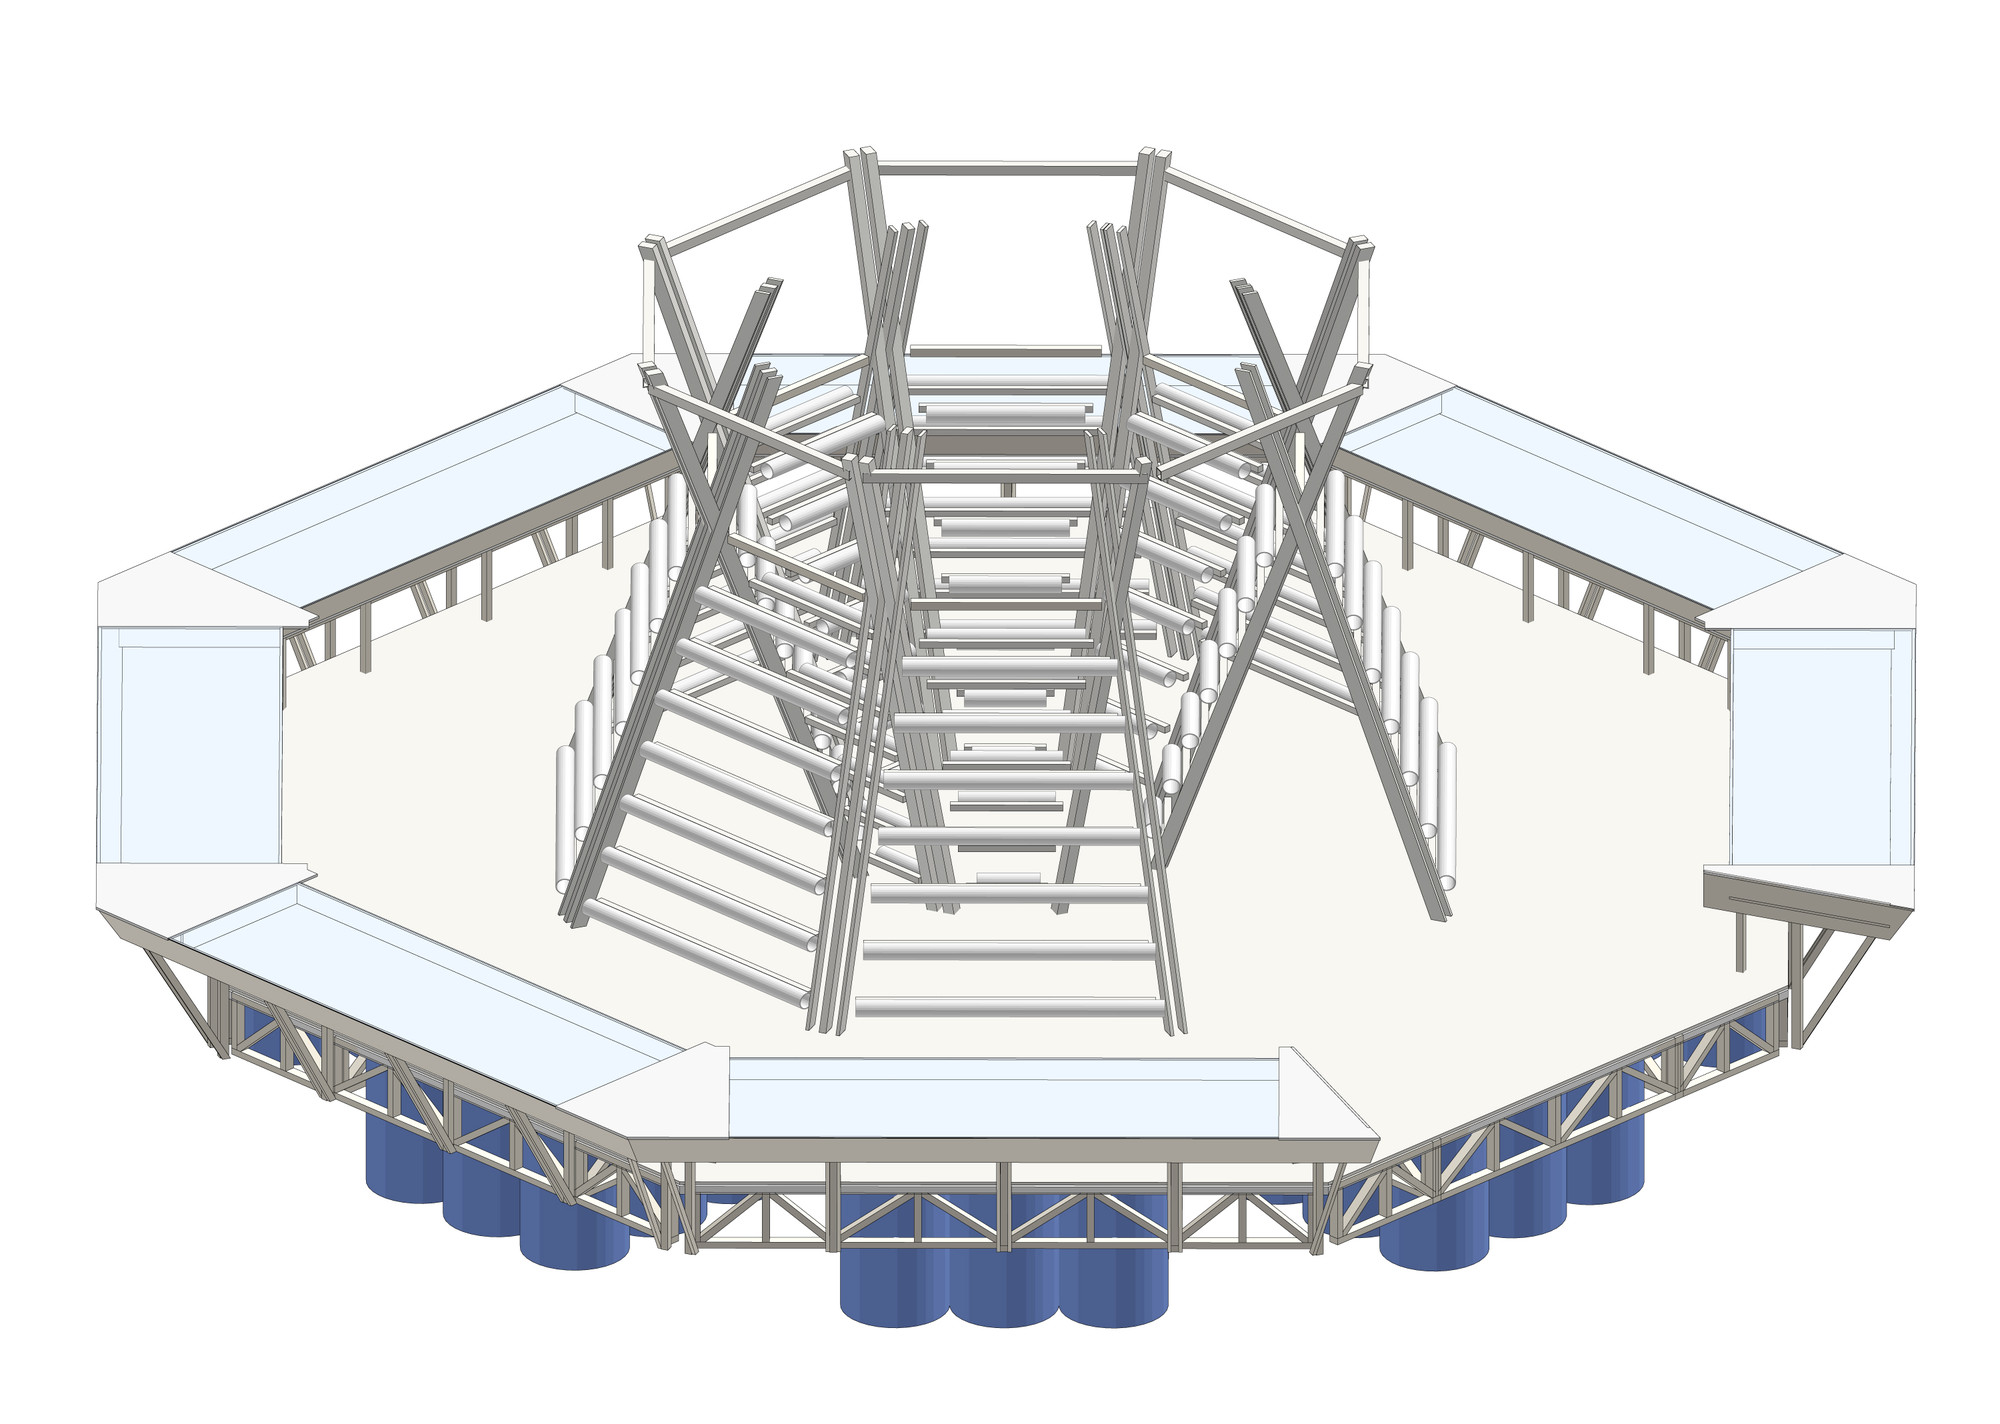 medium resolution of  jellyfish barge provides sustainable source of food and water construction diagram step